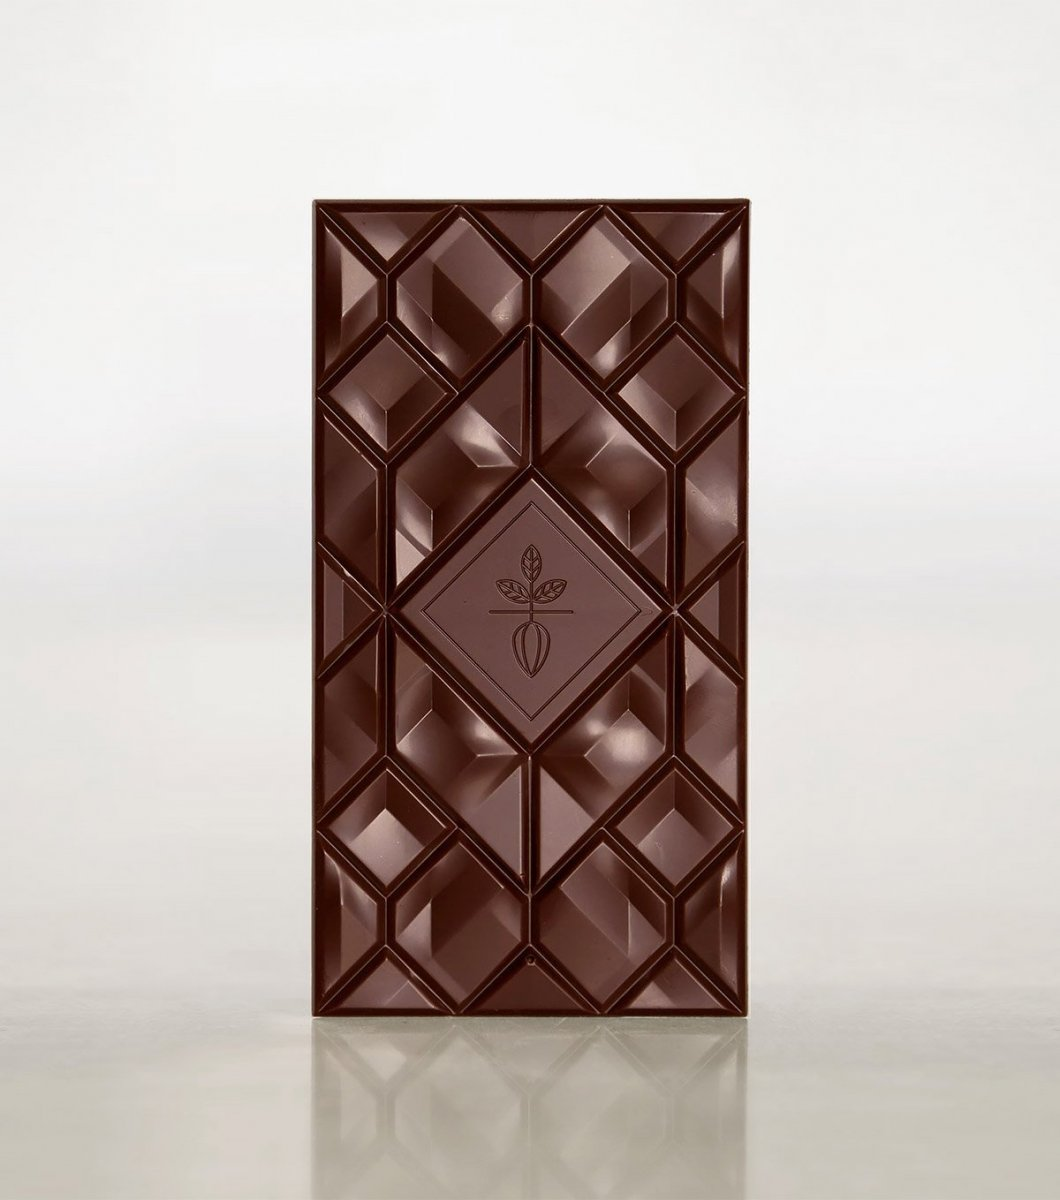 Beau-Cacao-Packaging-Chocolate-Bar-Design-Daily-design-inspiration-for-creatives-Inspiration-G-12